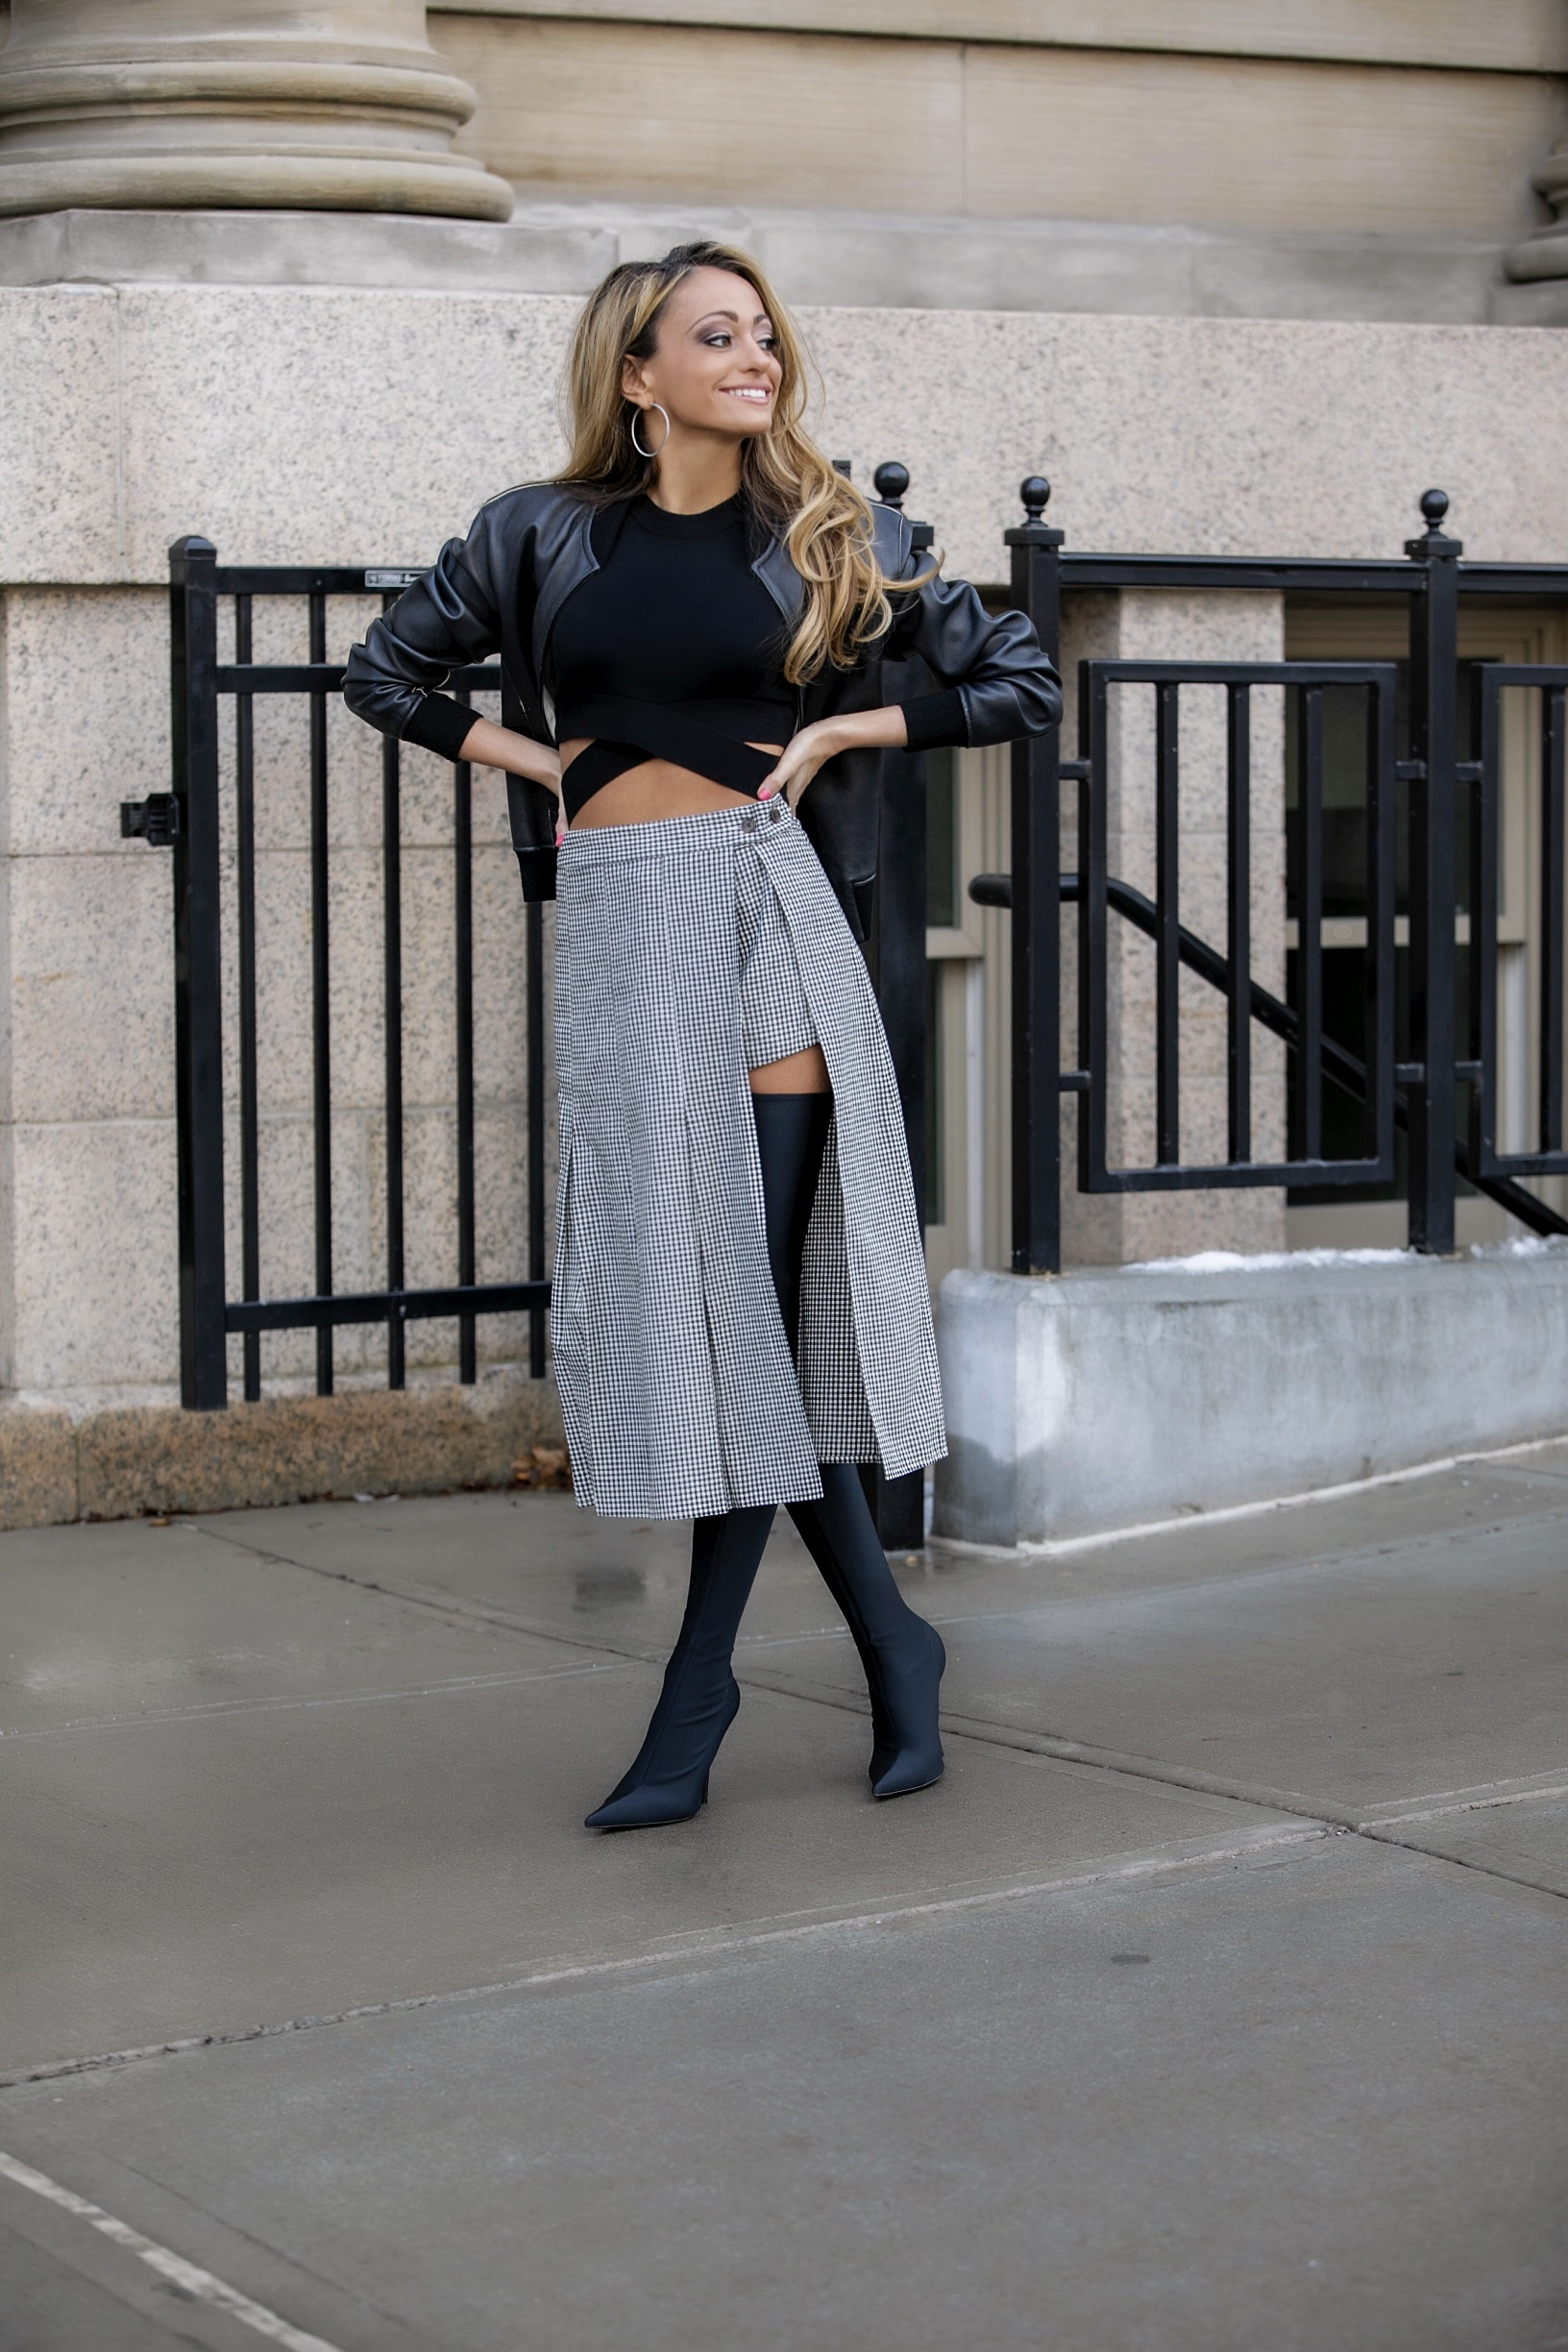 Lauren Recchia fashion week streetstyle in a Sandy Liang gingham skirt, Balenciaga boots, and a leather bomber jacket